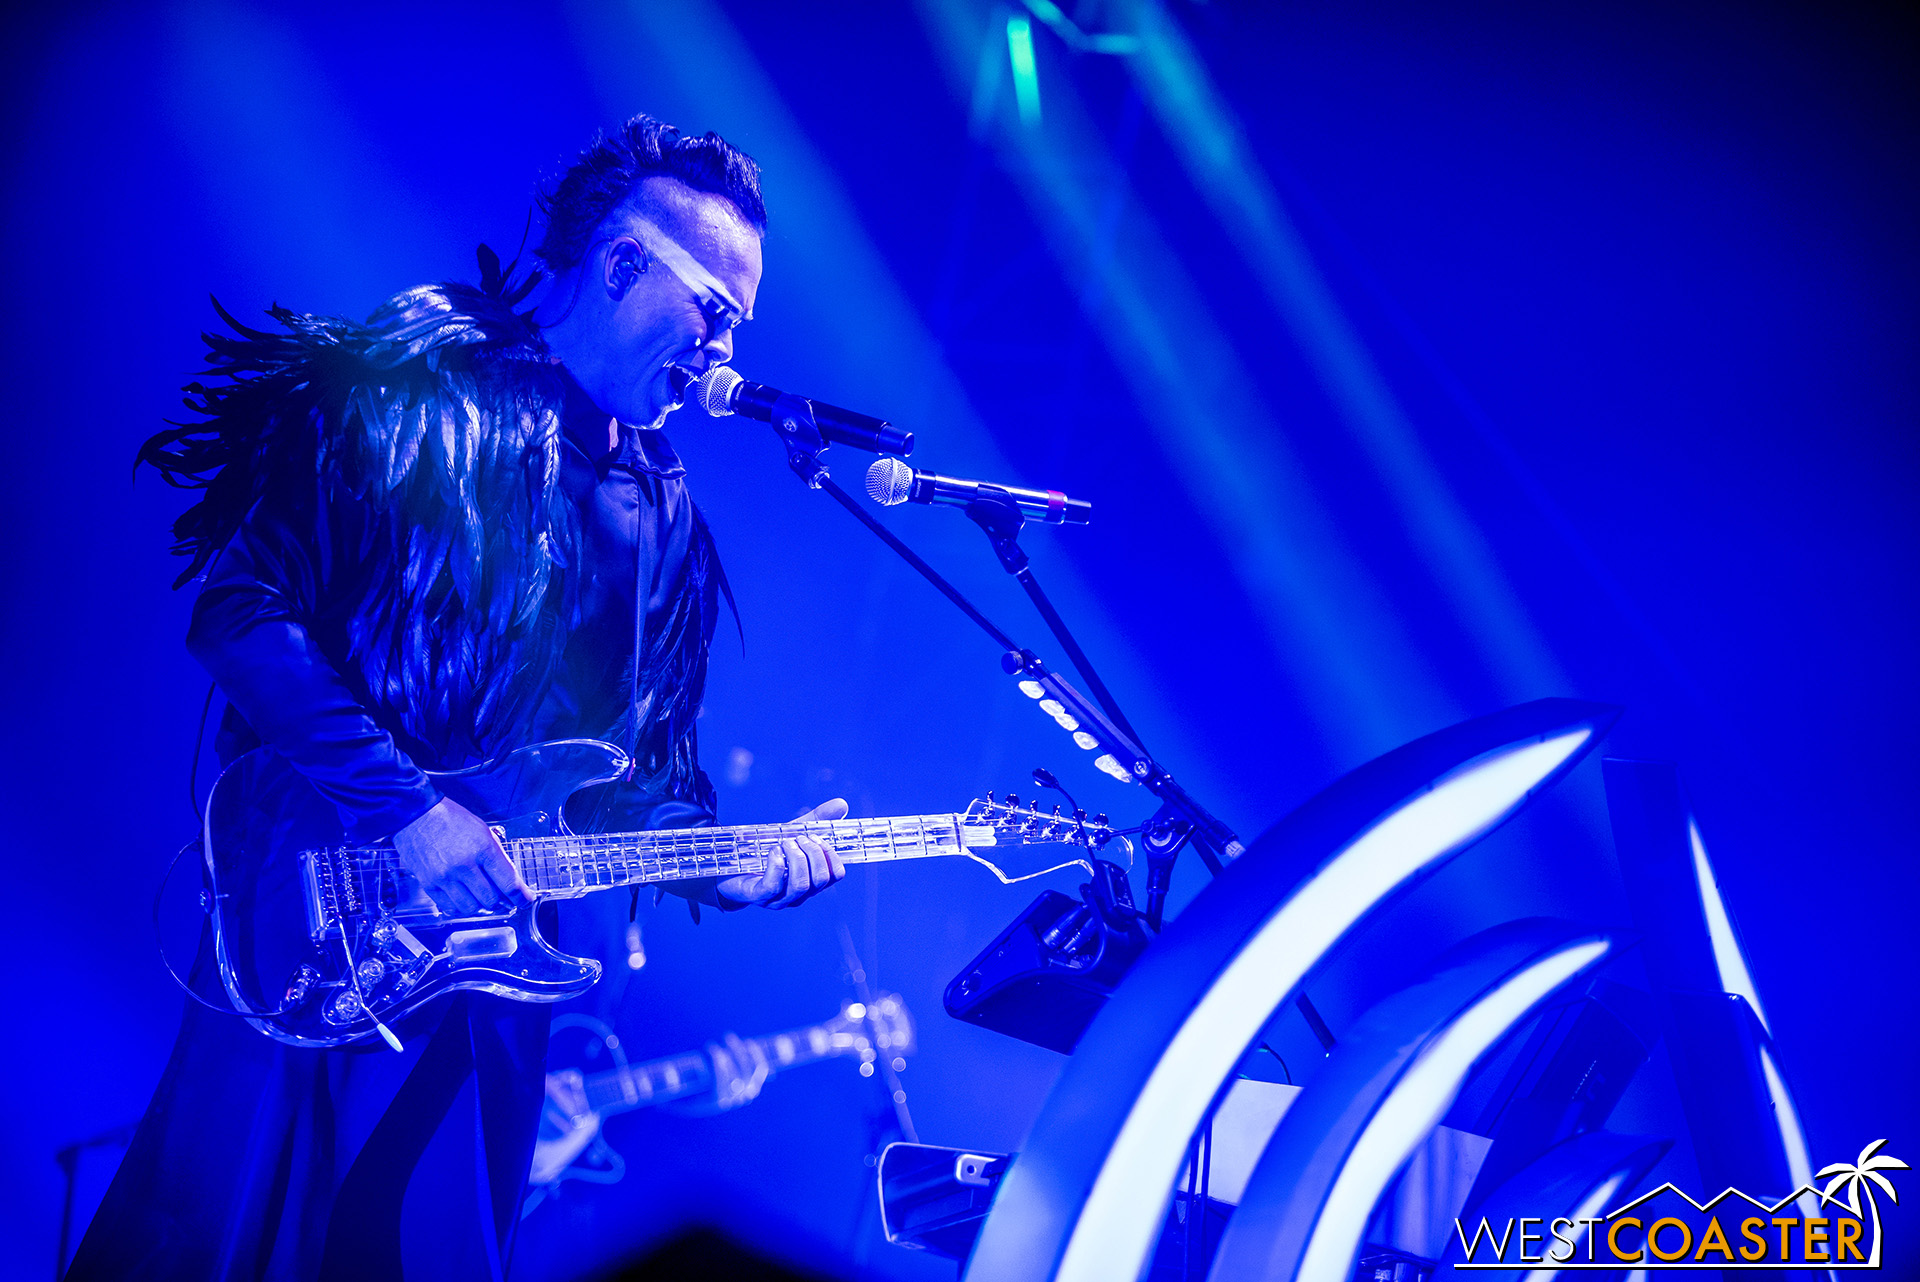 Empire of the Sun covered a broad setlist spanning all of their hits.